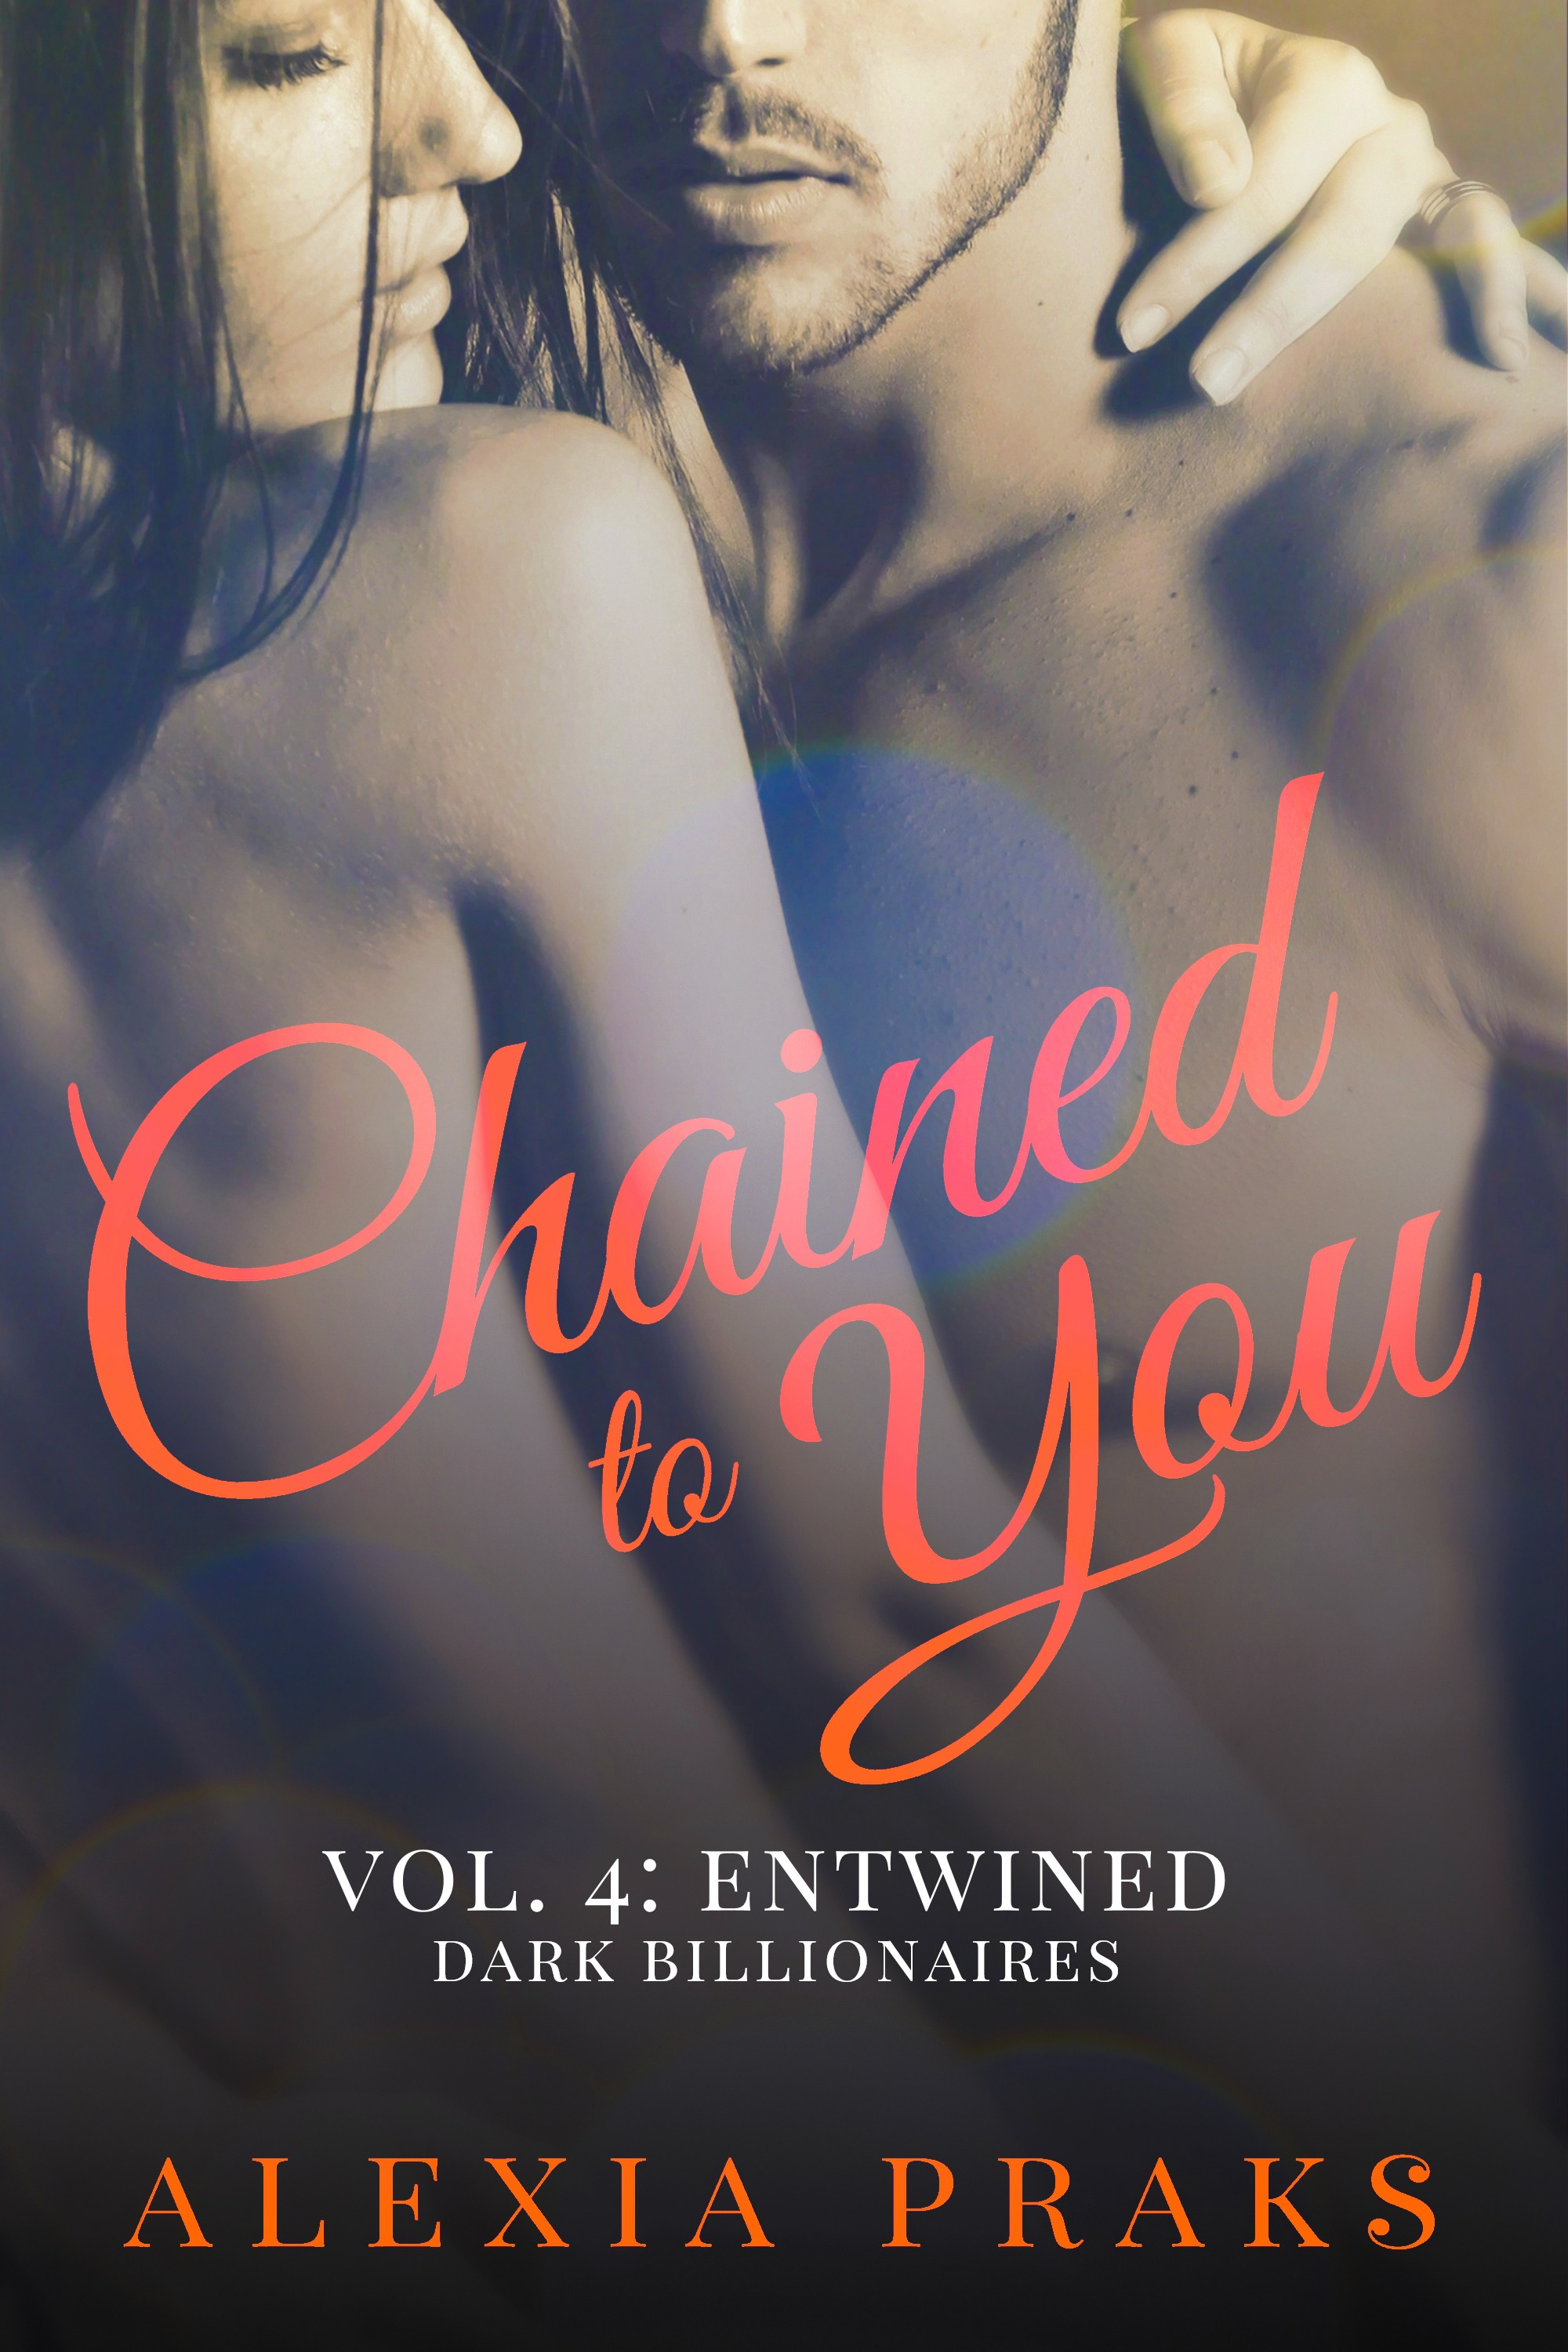 Chained to You: Entwined by Alexia Praks